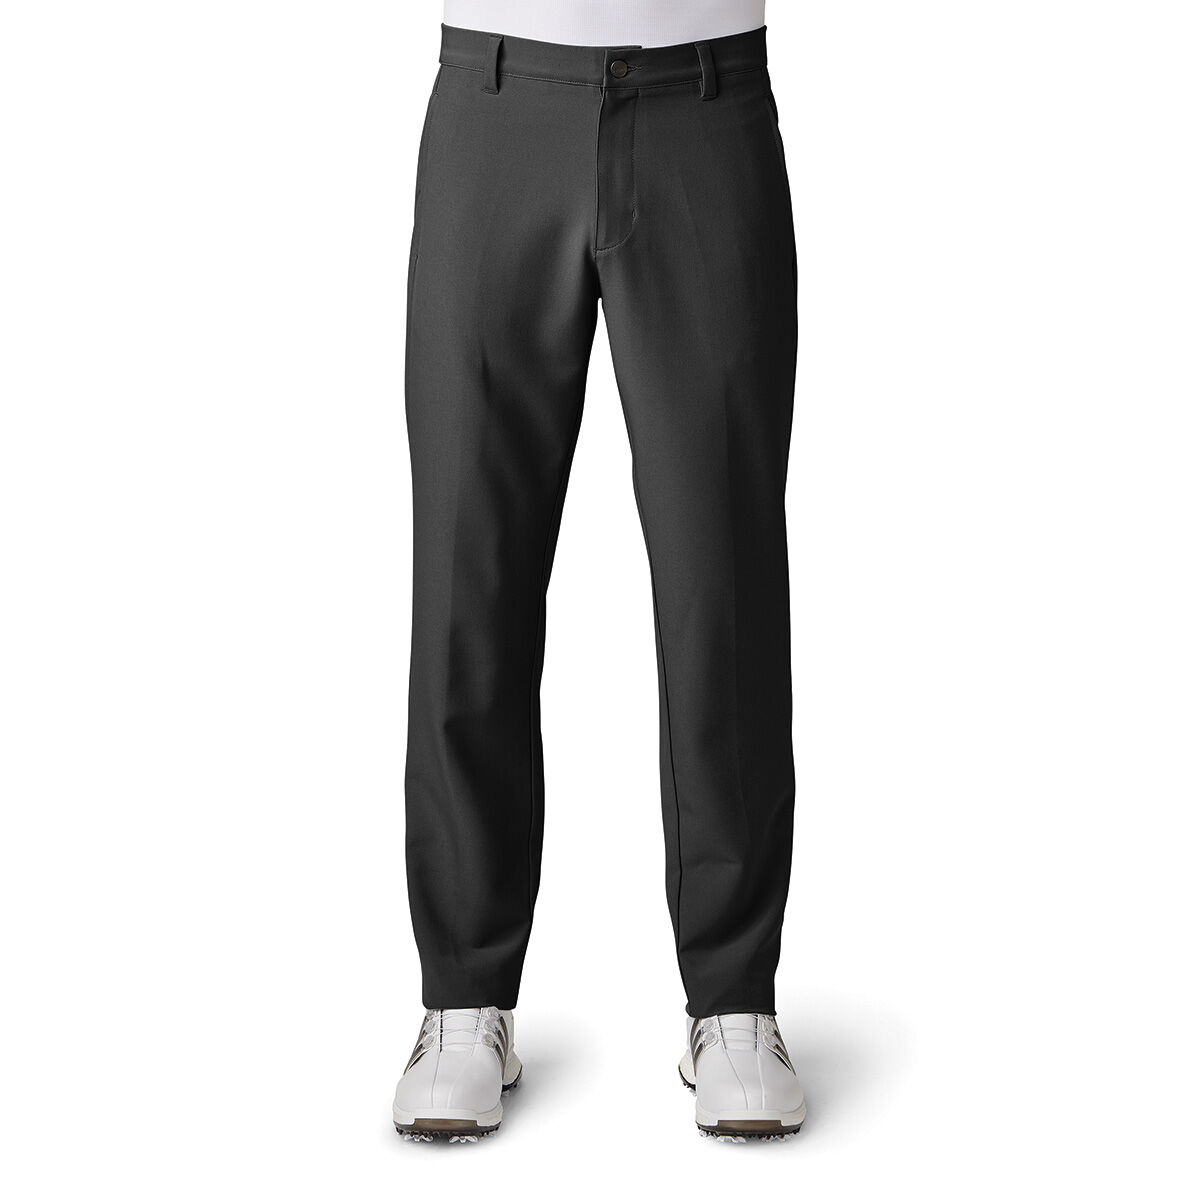 355dab89825 adidas Ultimate 365 3-Stripes Pant | PGA TOUR Superstore